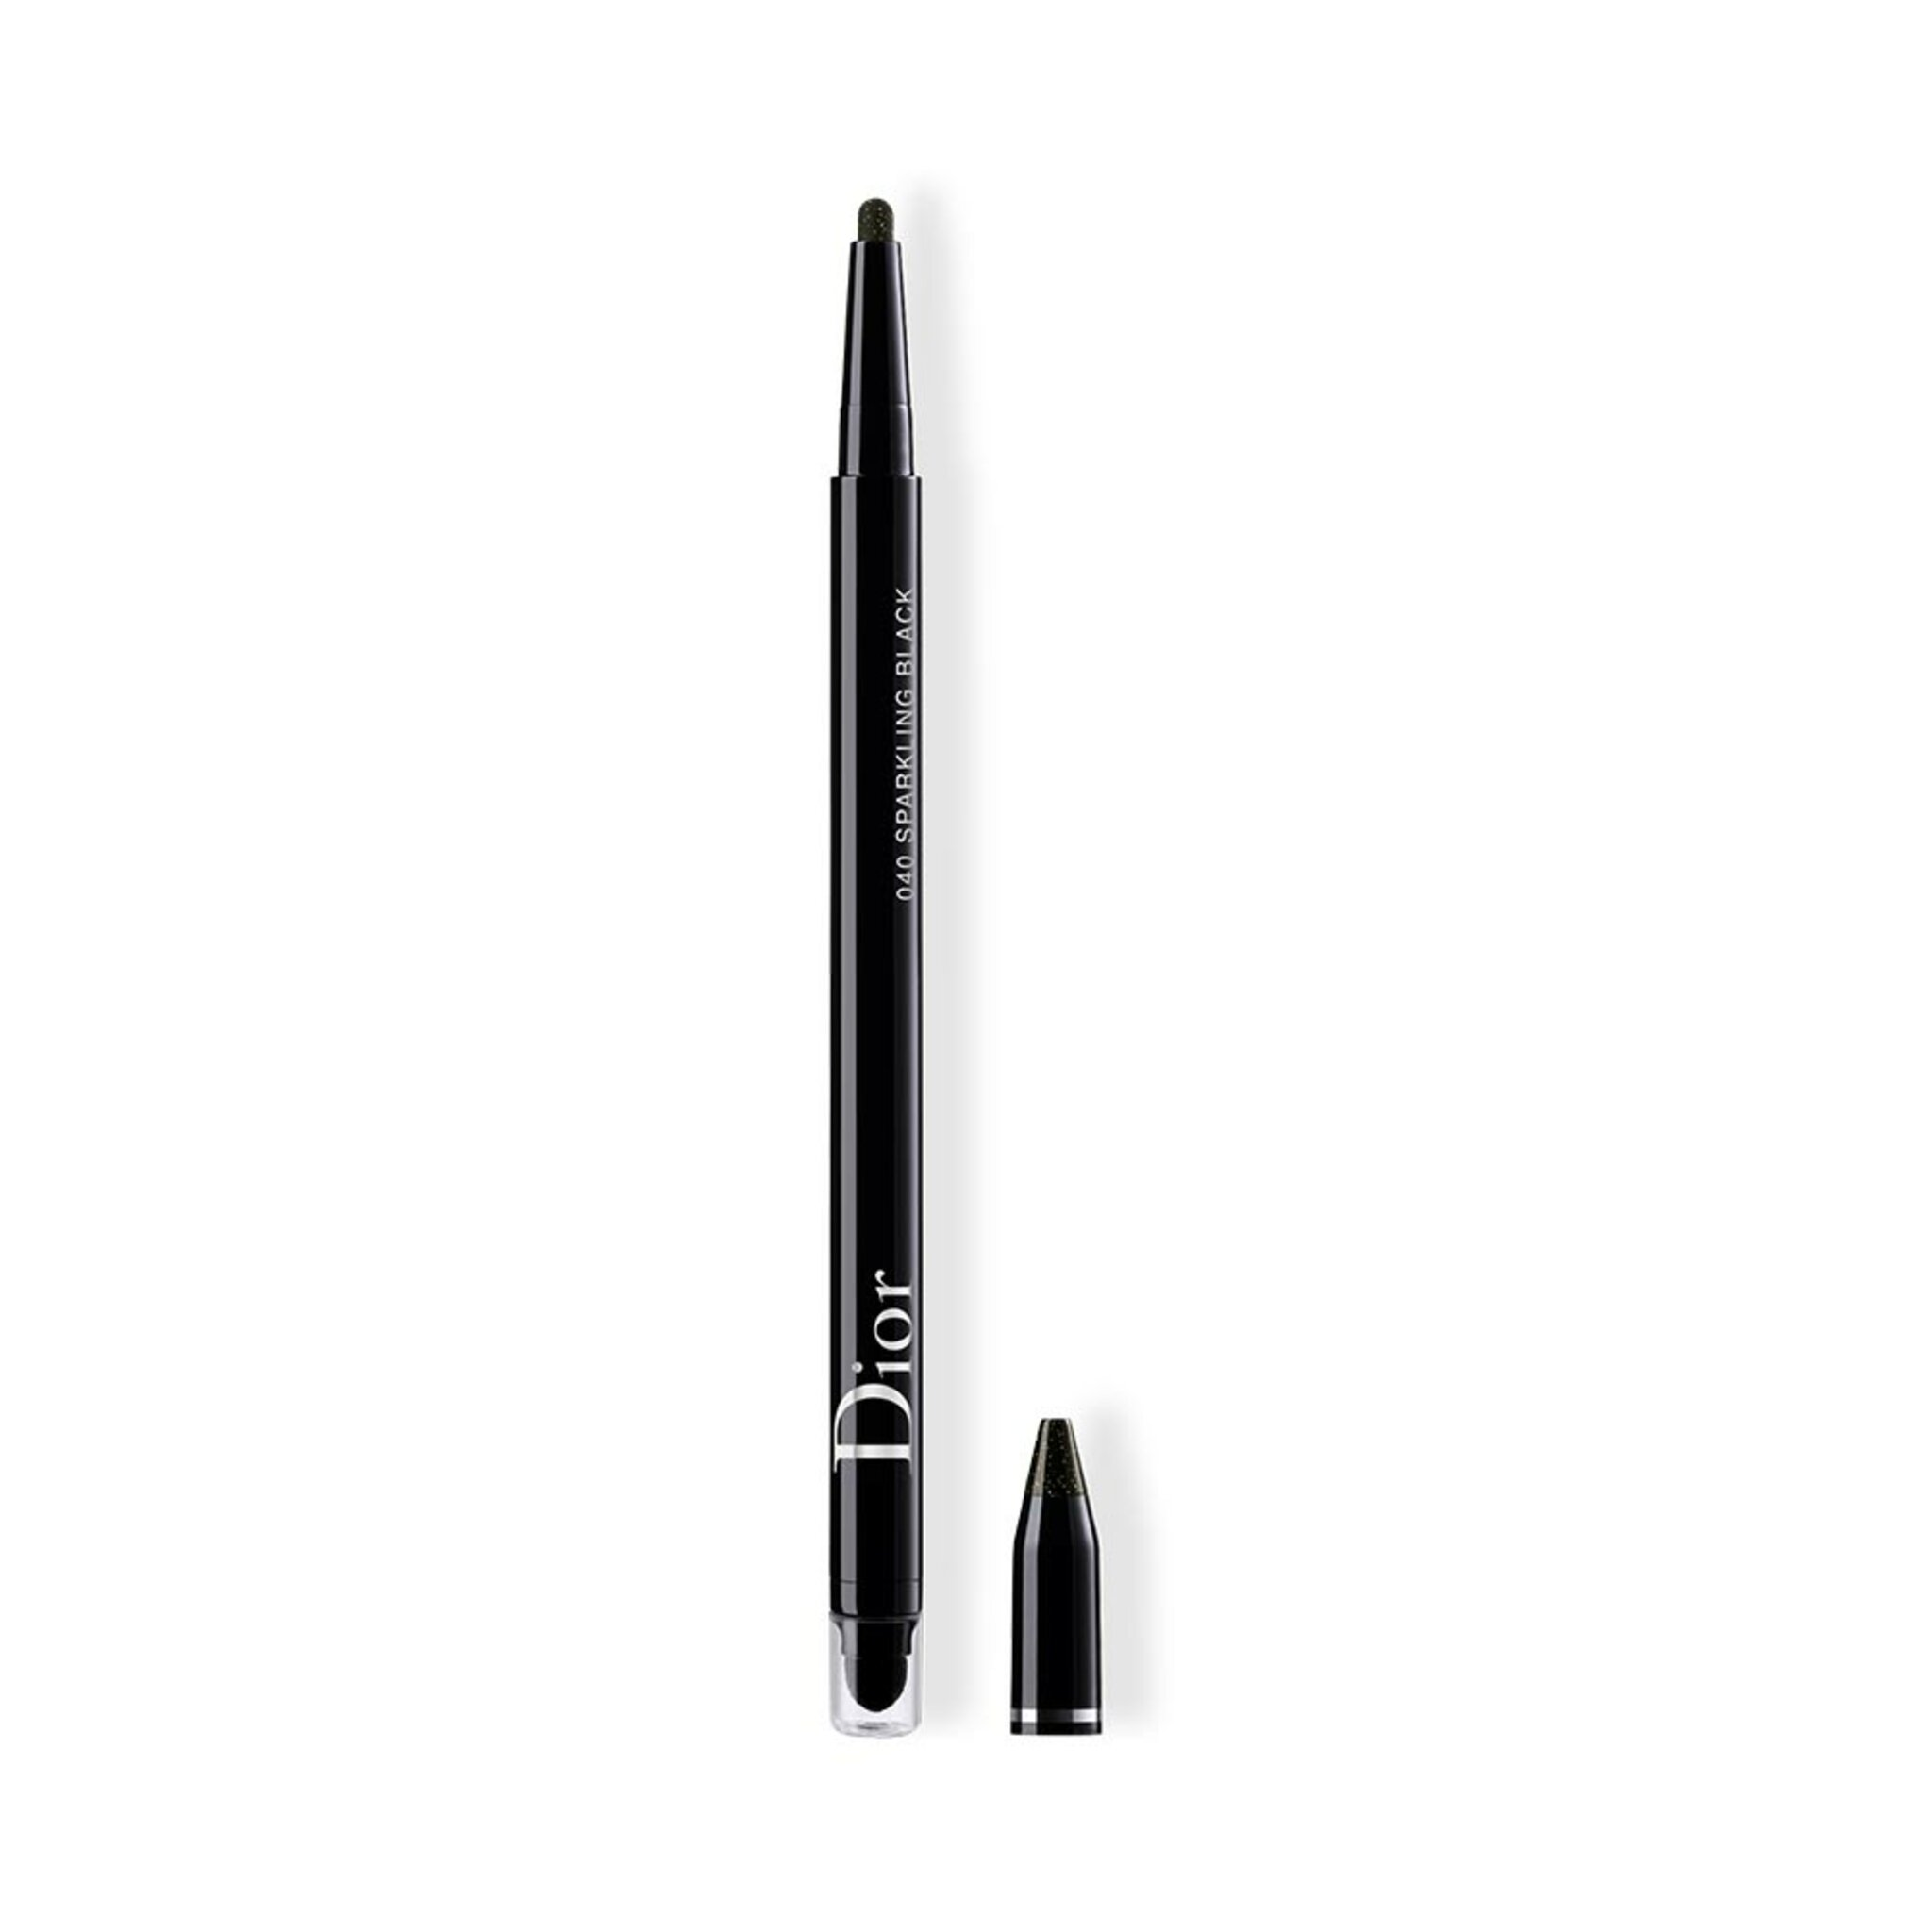 Diorshow 24H Stylo - Golden Nights Collection Limited Edition Eyeliner , 1,2 G